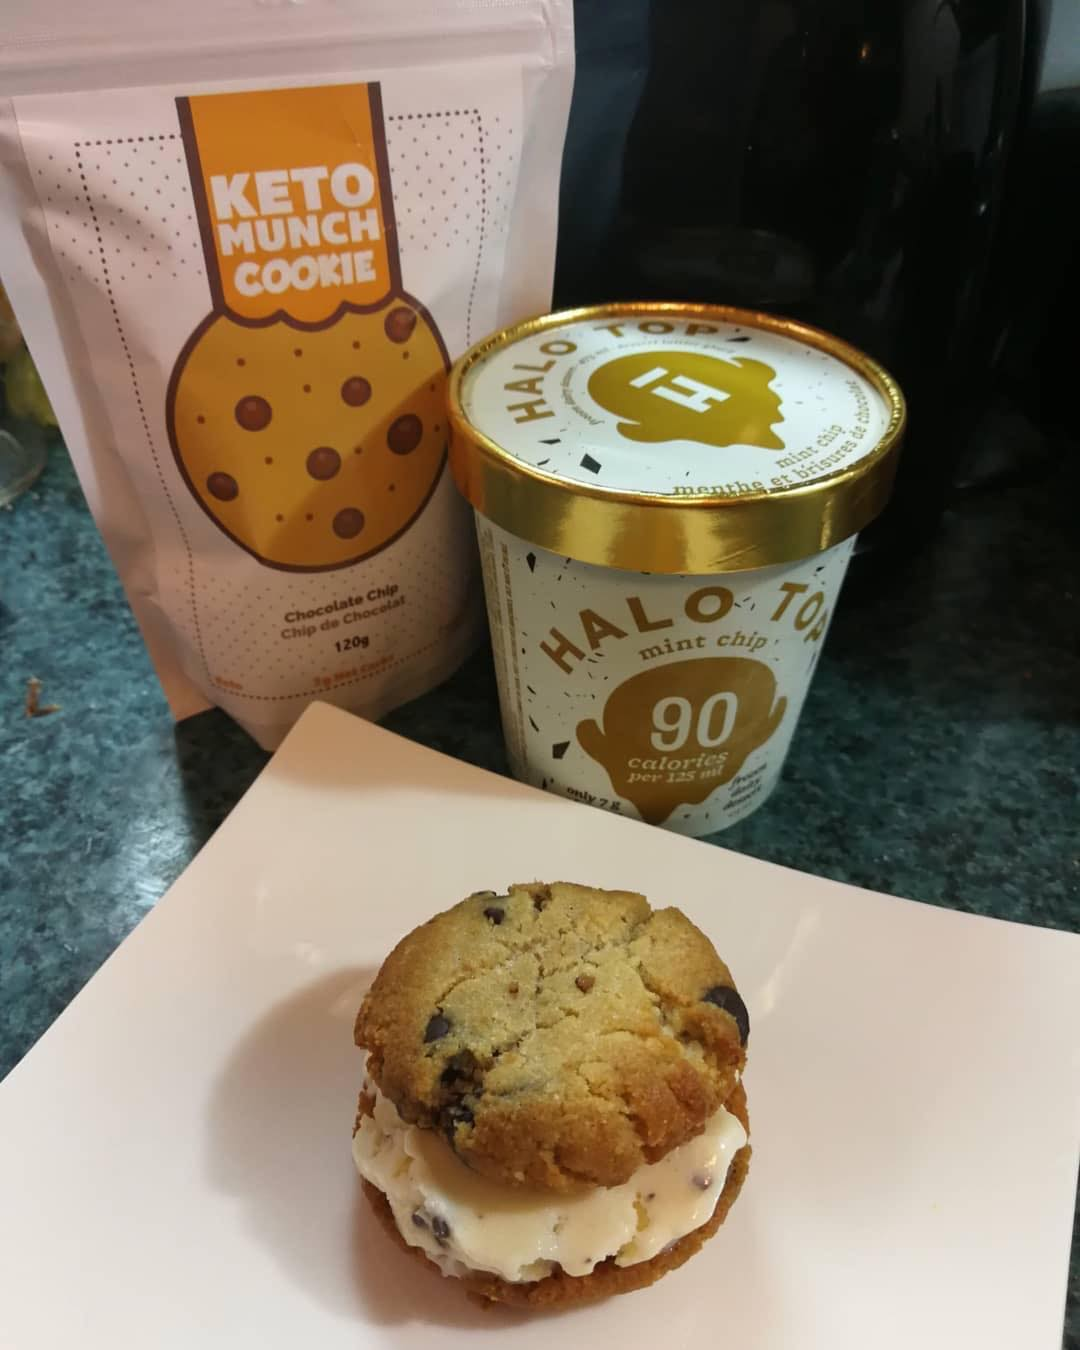 OMG I need this in my life! It's been a while since I've made my ice cream and I think I need to make some new flavors and ice cream sandwiches!! —— Repost @thriving.on.low.carb ・・・ Ohhhhhh yeahhhhh. ? —- Talk about great timing! I received my @ketobakeclub box yesterday and I was happy to see a bag of @ketomunchfoods cookies in there. ? —- I couldn't resist making a Halo Top Mint Chip Keto Munch Cookie ice cream sandwich. ? I used 1/4 cup of the Mint Chip.  I think it's been a while since having HT, I thought it was richer and creamier. (Though my fave is Red Velvet and I need to get.) I tried a spoon of the Birthday cake flavour and liked that better. I'll have to try that for my next sandwich ? —- Curious about the macros on this? — 265 calories 21.5g Fat 6.5g Protein  5.5g Net Carb —- I think next time I'll make these up beforehand and freeze. Perfect for summer